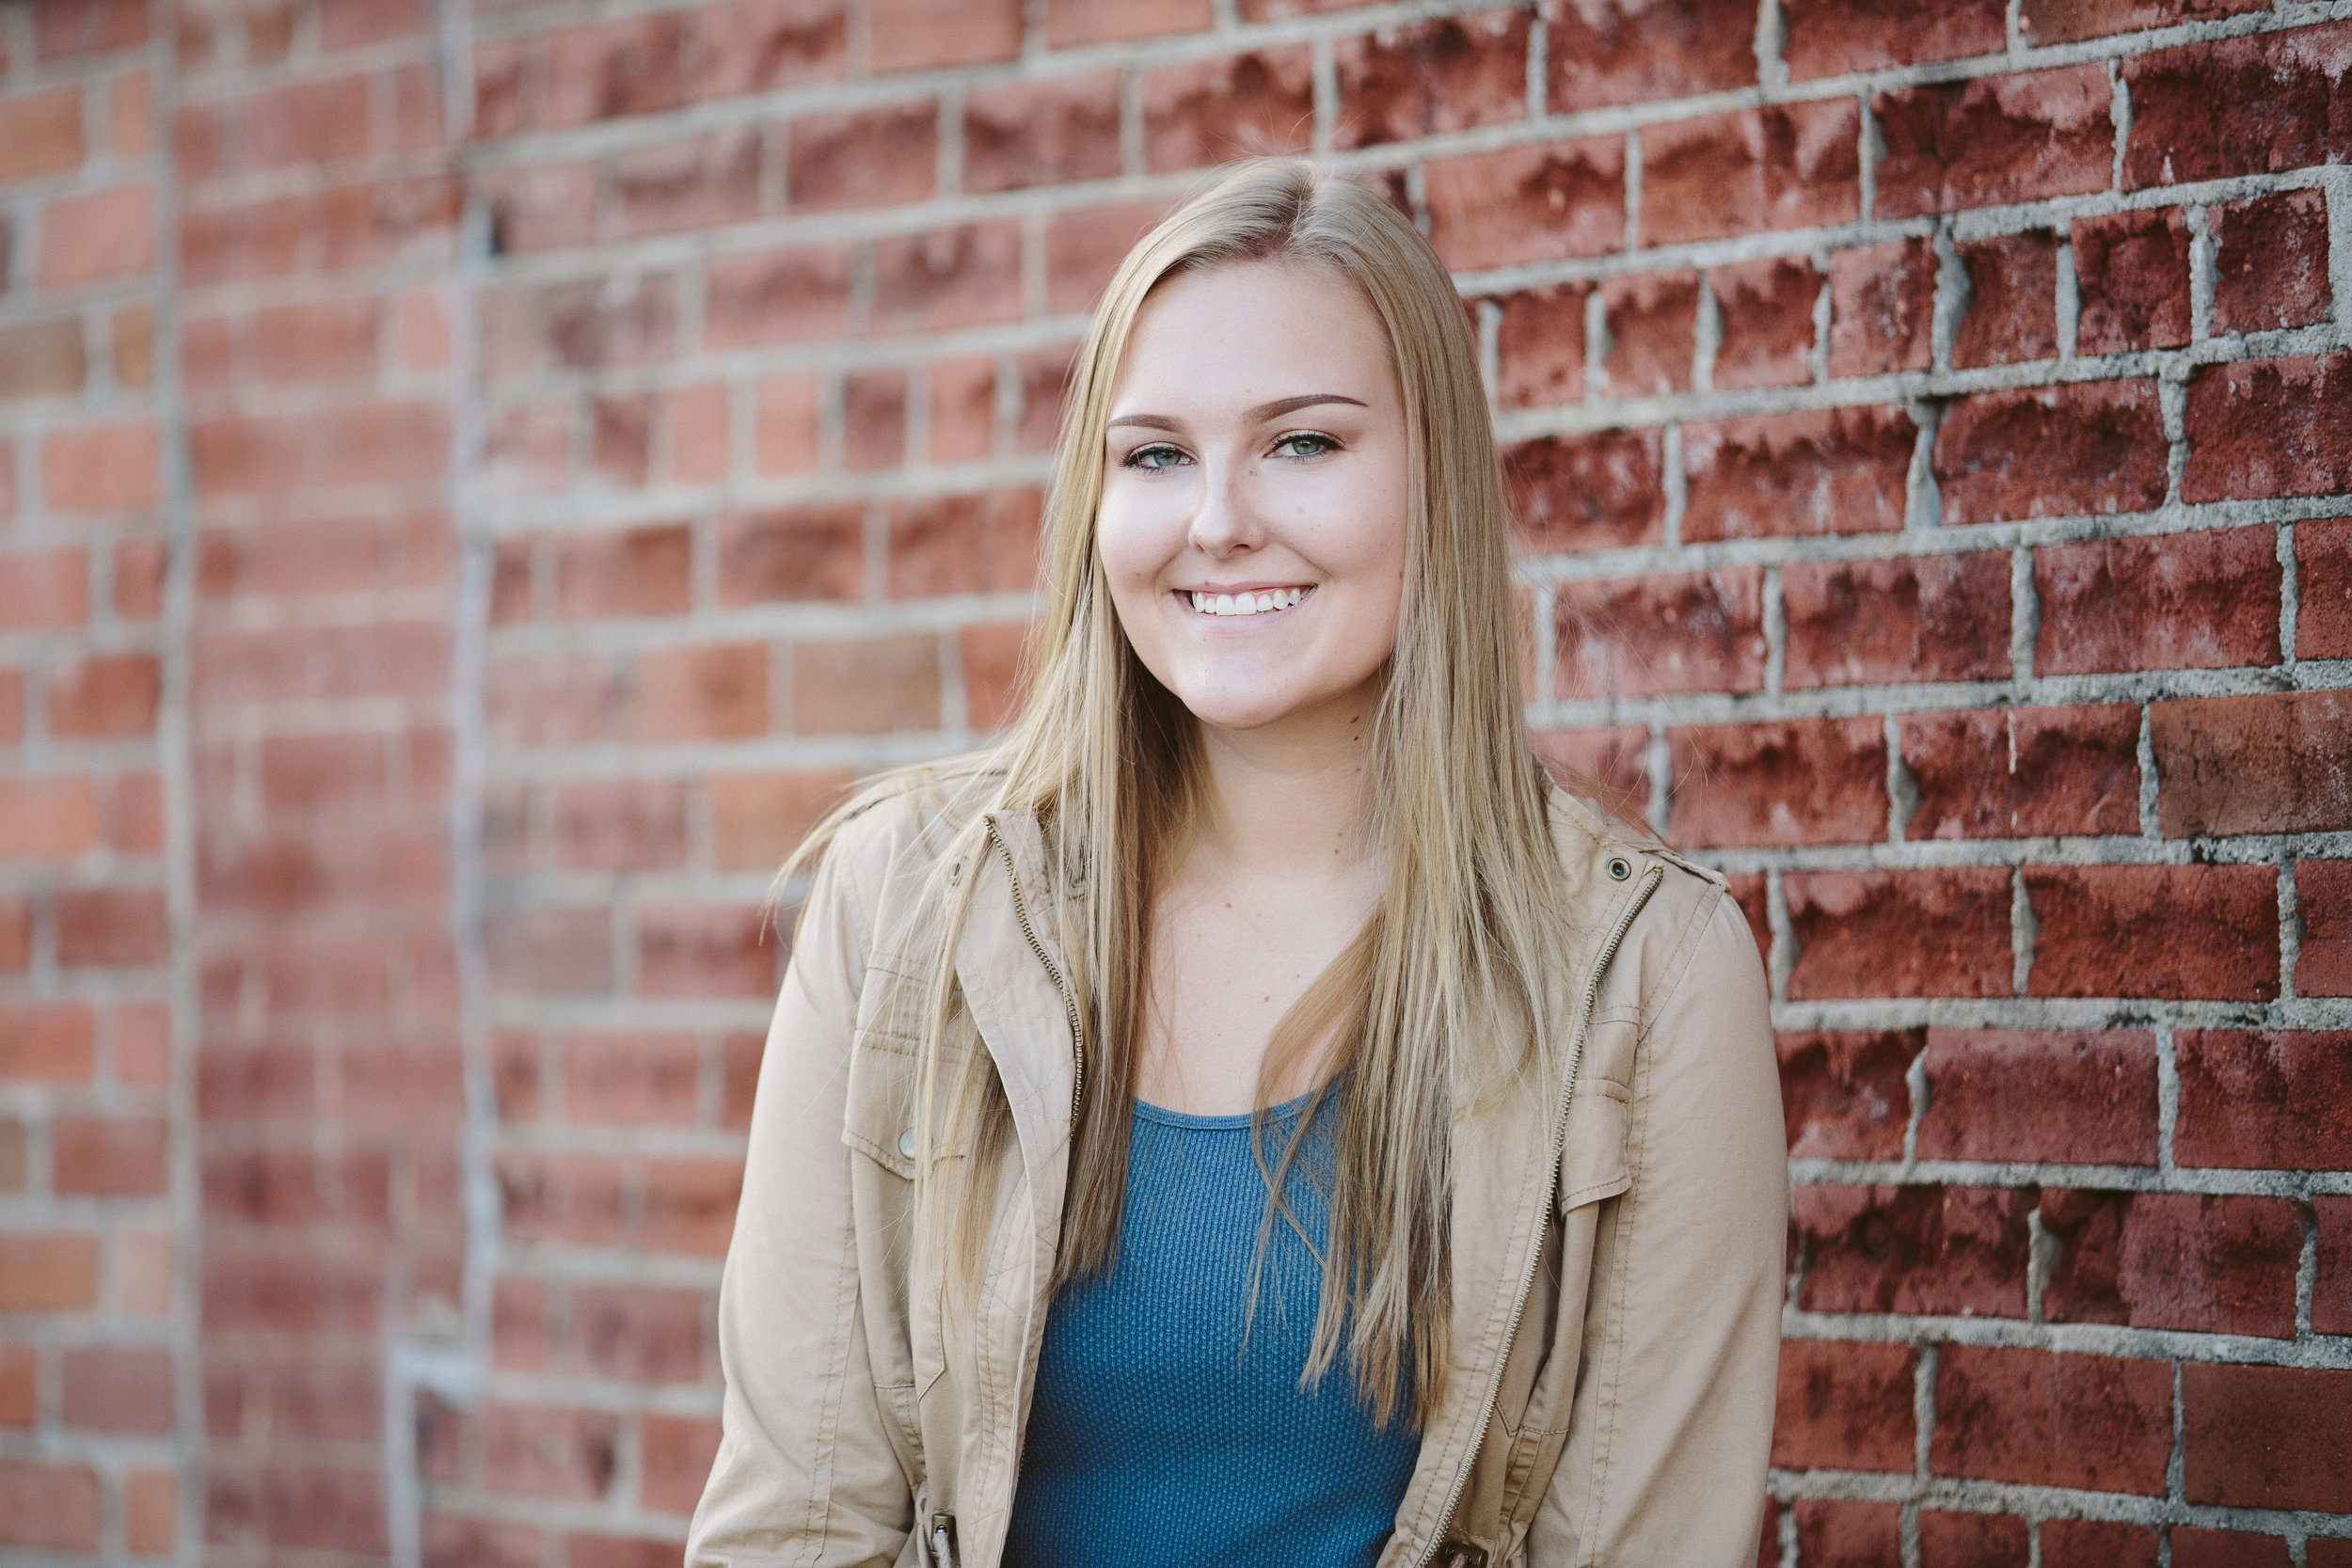 MP_Senior Portraits-Leah Van Der Sanden-2543-web.jpg